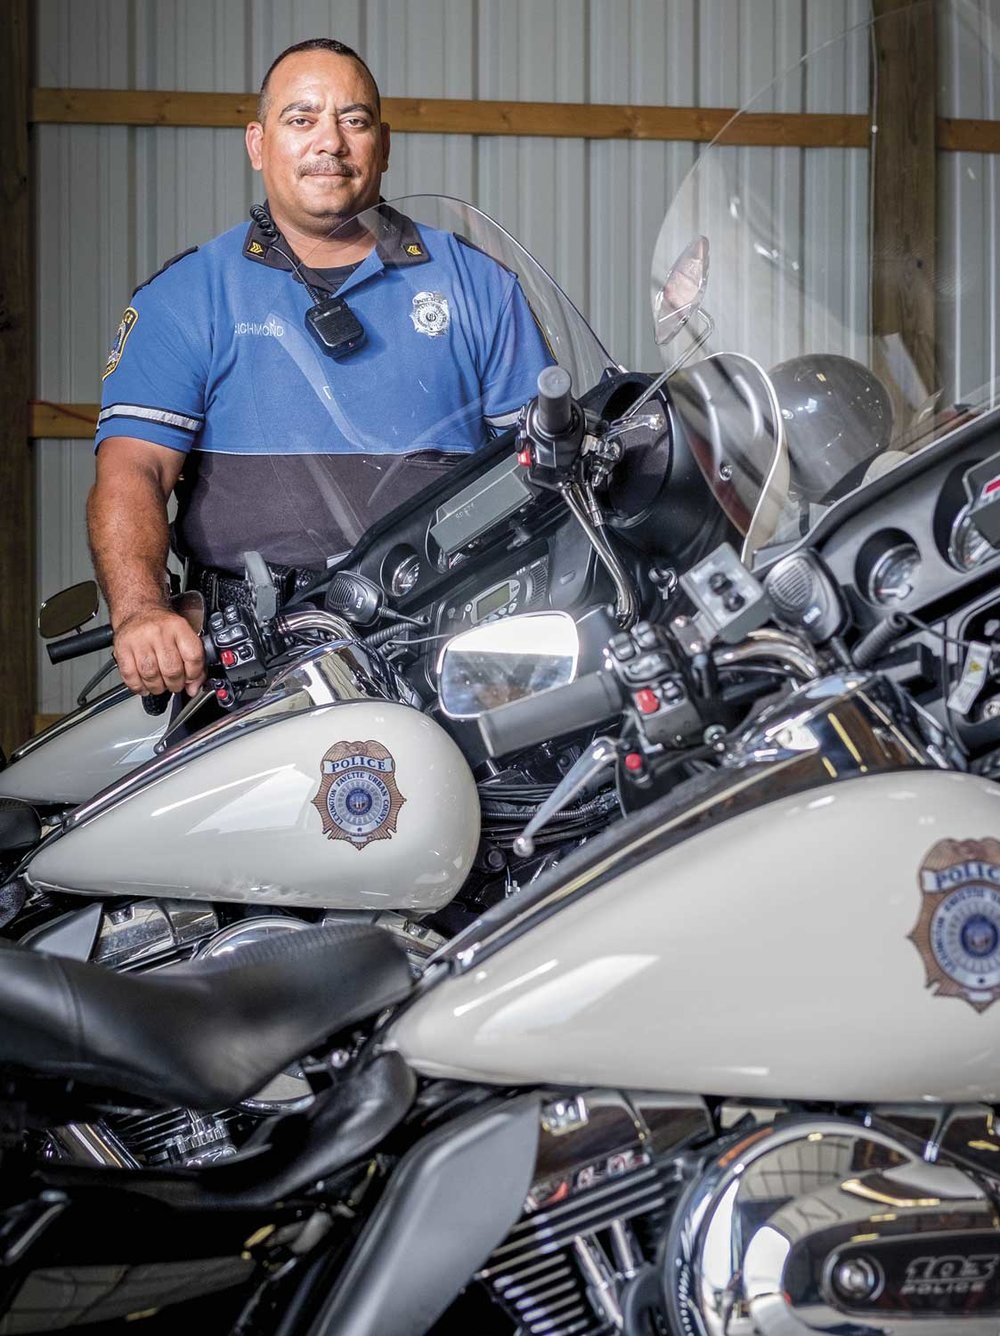 Officer Billy Richmond has served the Lexington Police motorcycle unit for nine years, and has passed his knowledge and bike-handling expertise on to dozens of officers as an instructor in Lexington's police motorcycle course.  (Photo by Jim Robertson)